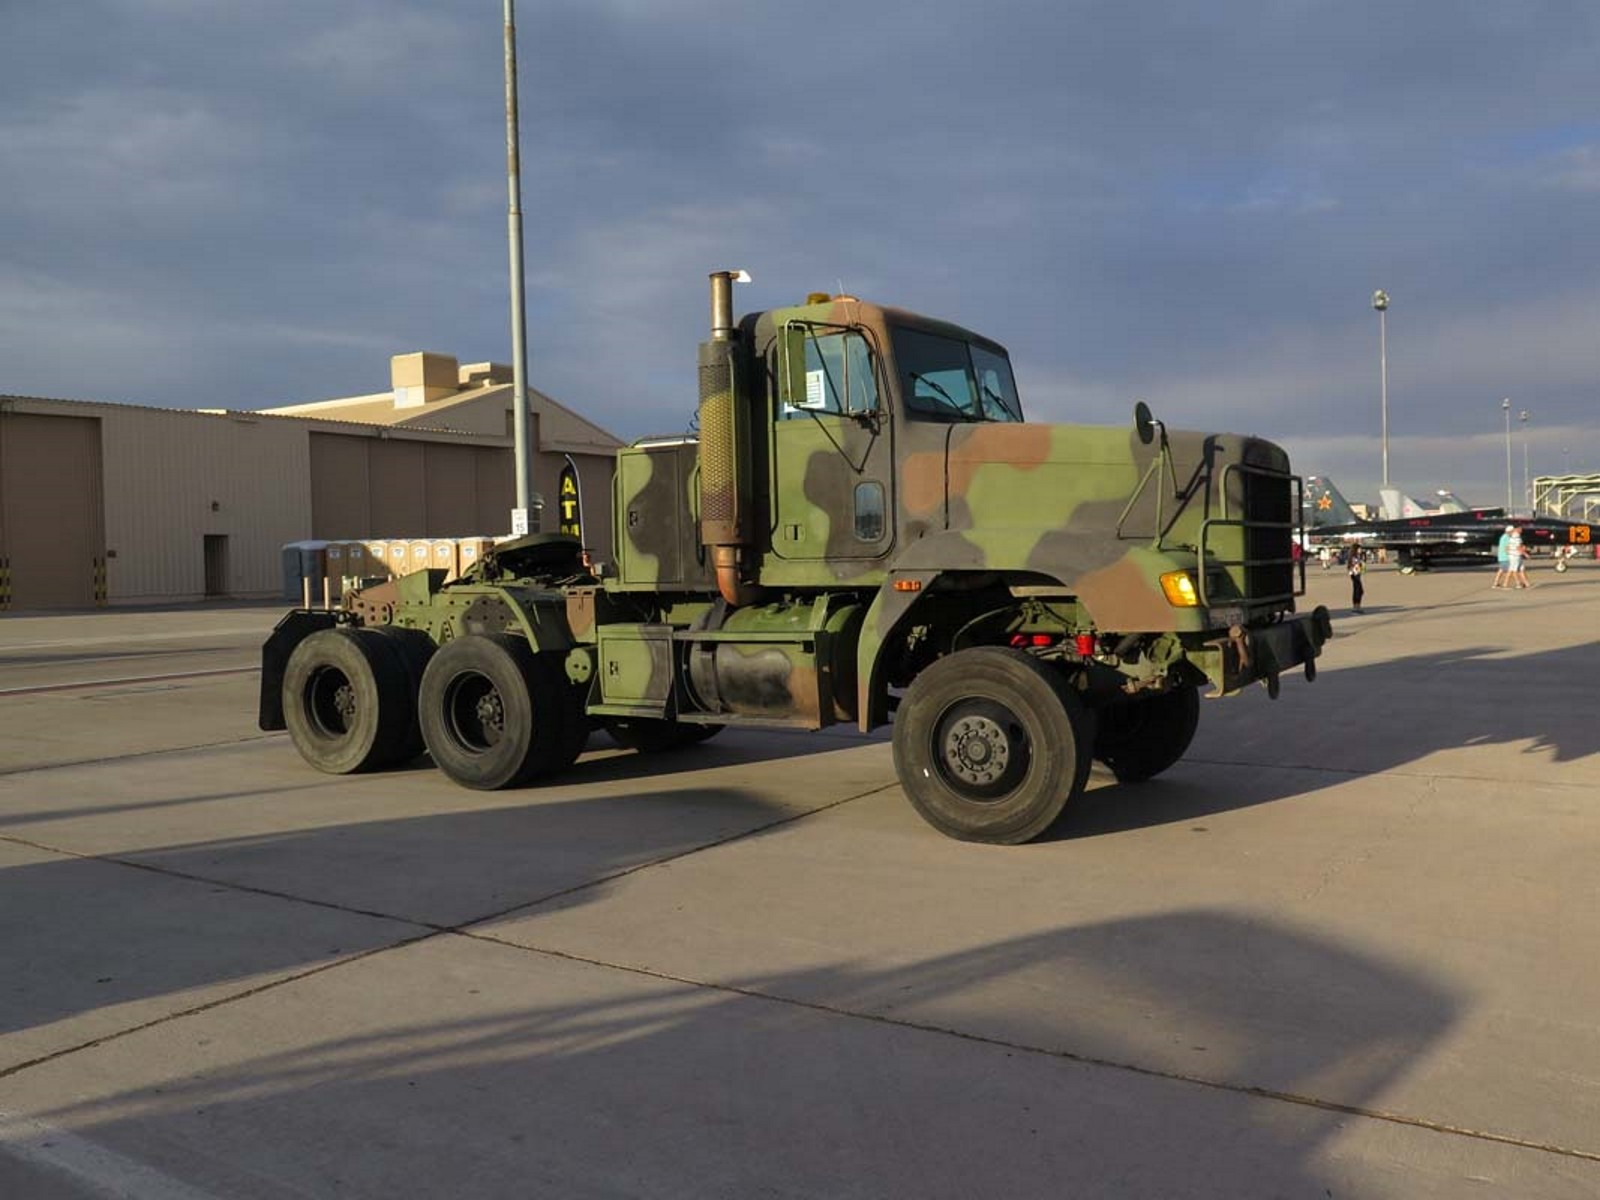 M915 truck - Walk Around